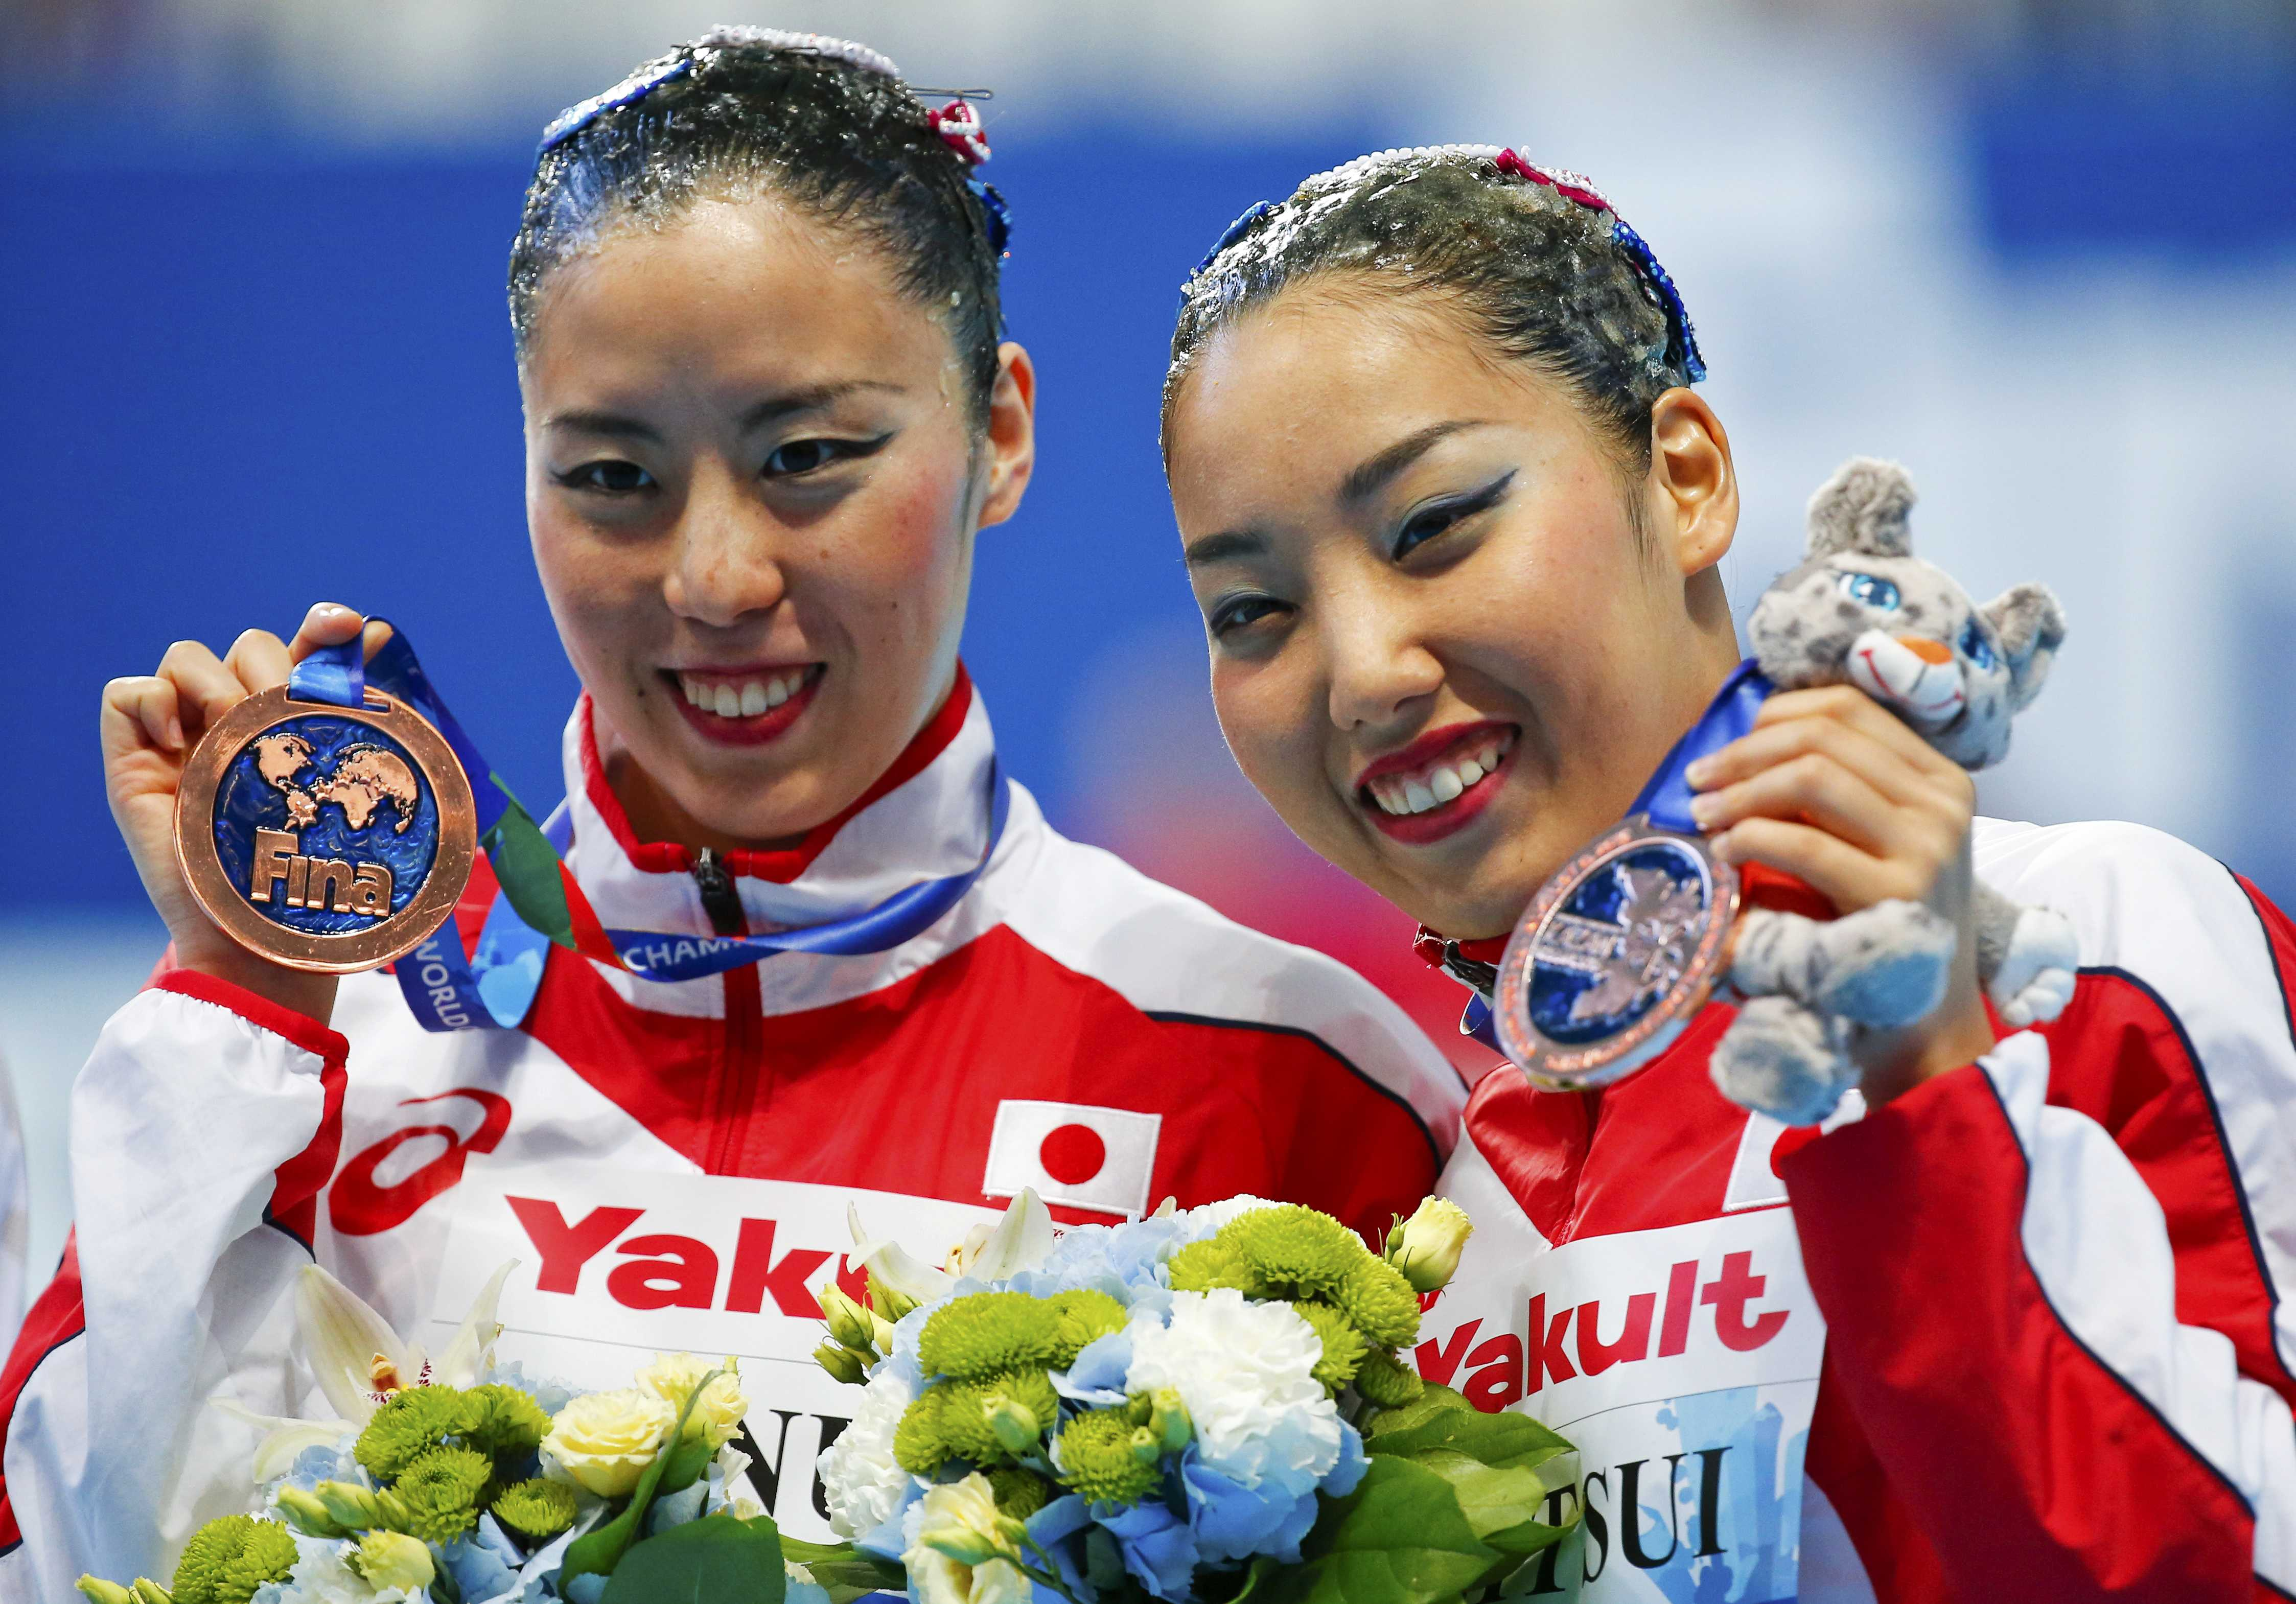 Yukiko Inui (left) and Risako Mitsui display their bronze medals from the synchronized swimming duet technical final at the FINA World Aquatics  Championships on Sunday in Kazan, Russia. | REUTERS